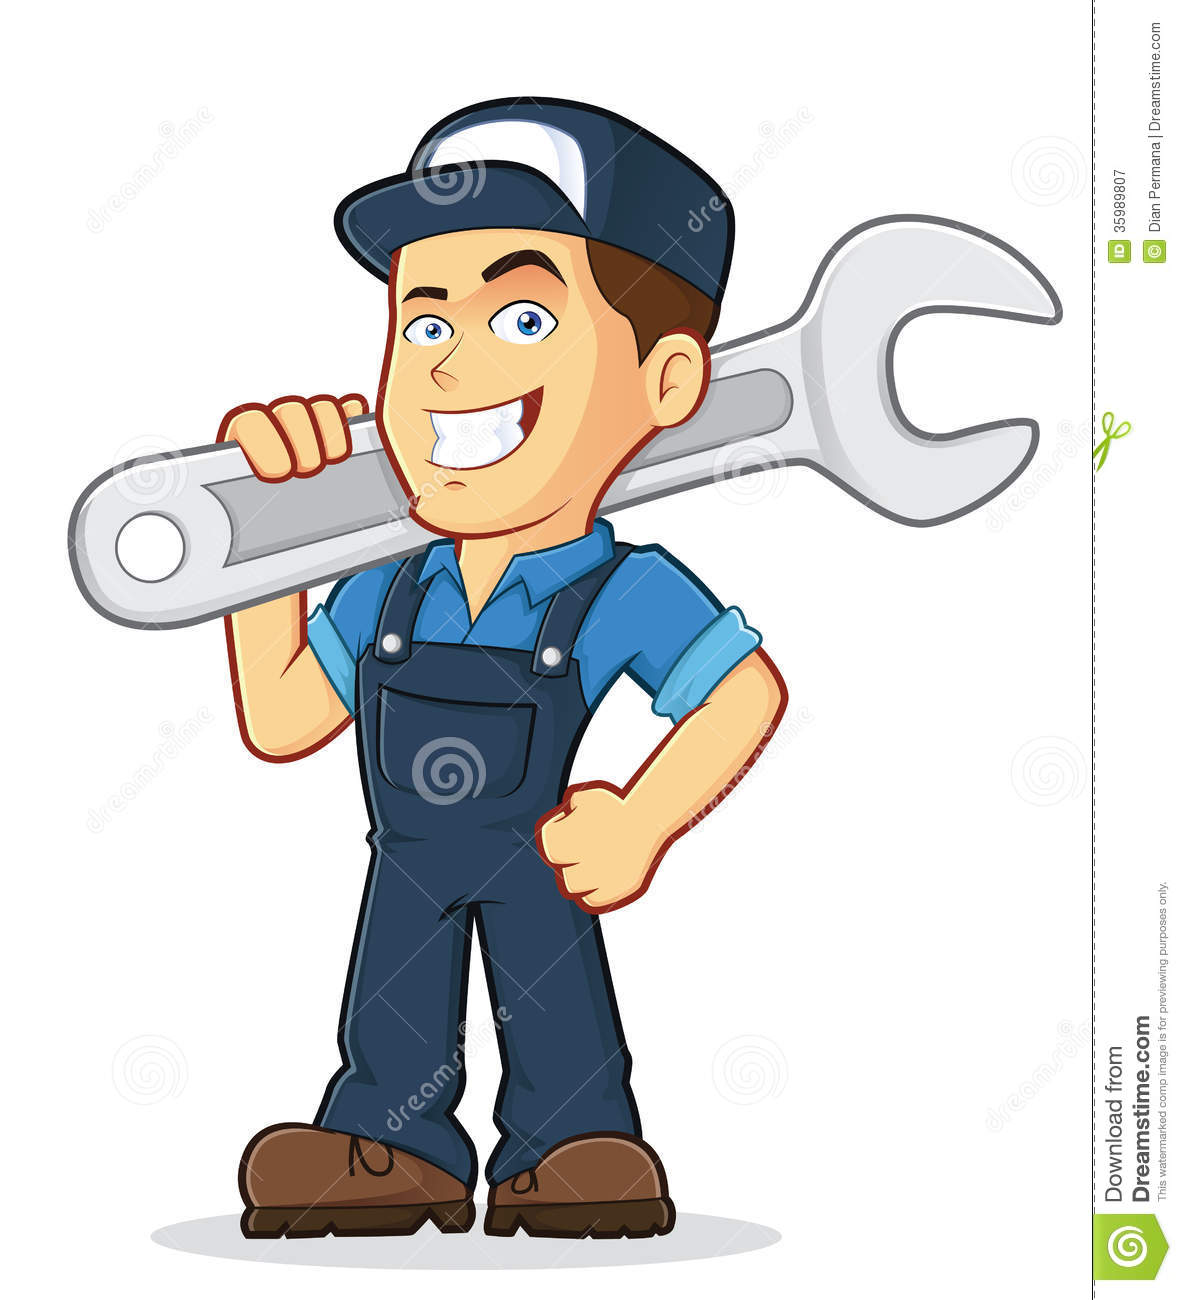 Mechanic clipart mechanical work. Cliparts free download best